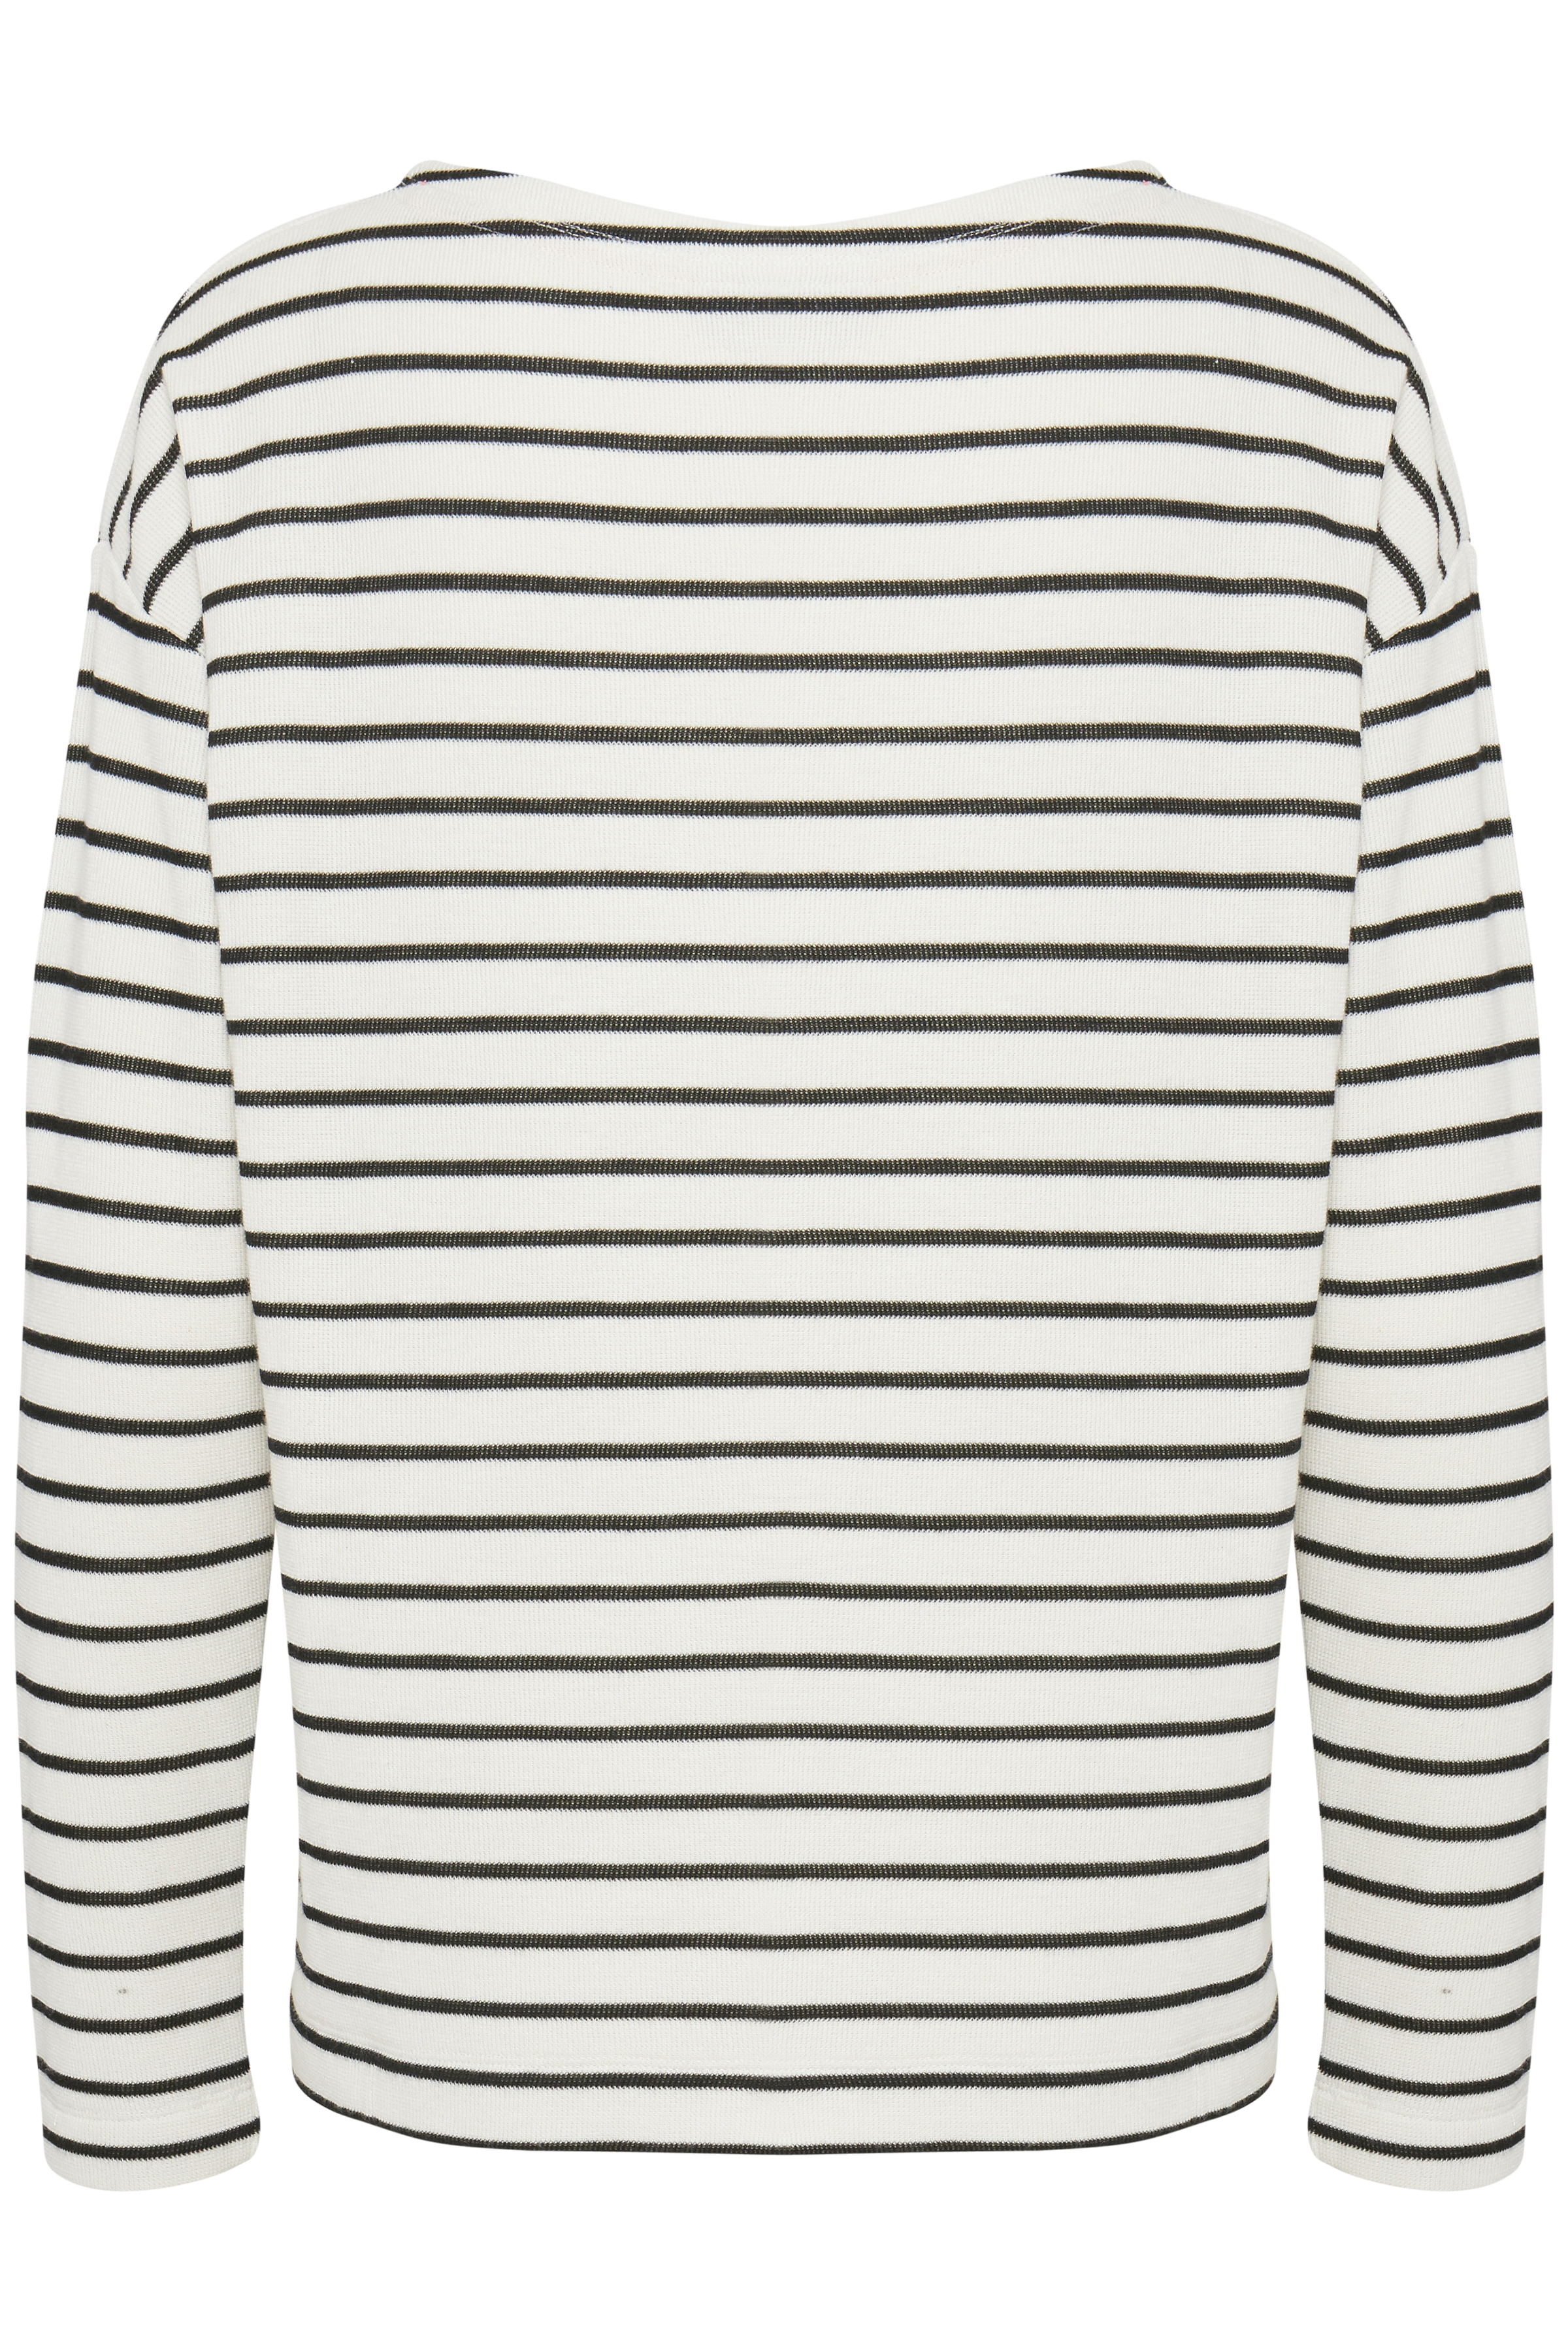 Black combi  from b.young – Buy Black combi  from size XS-XXL here